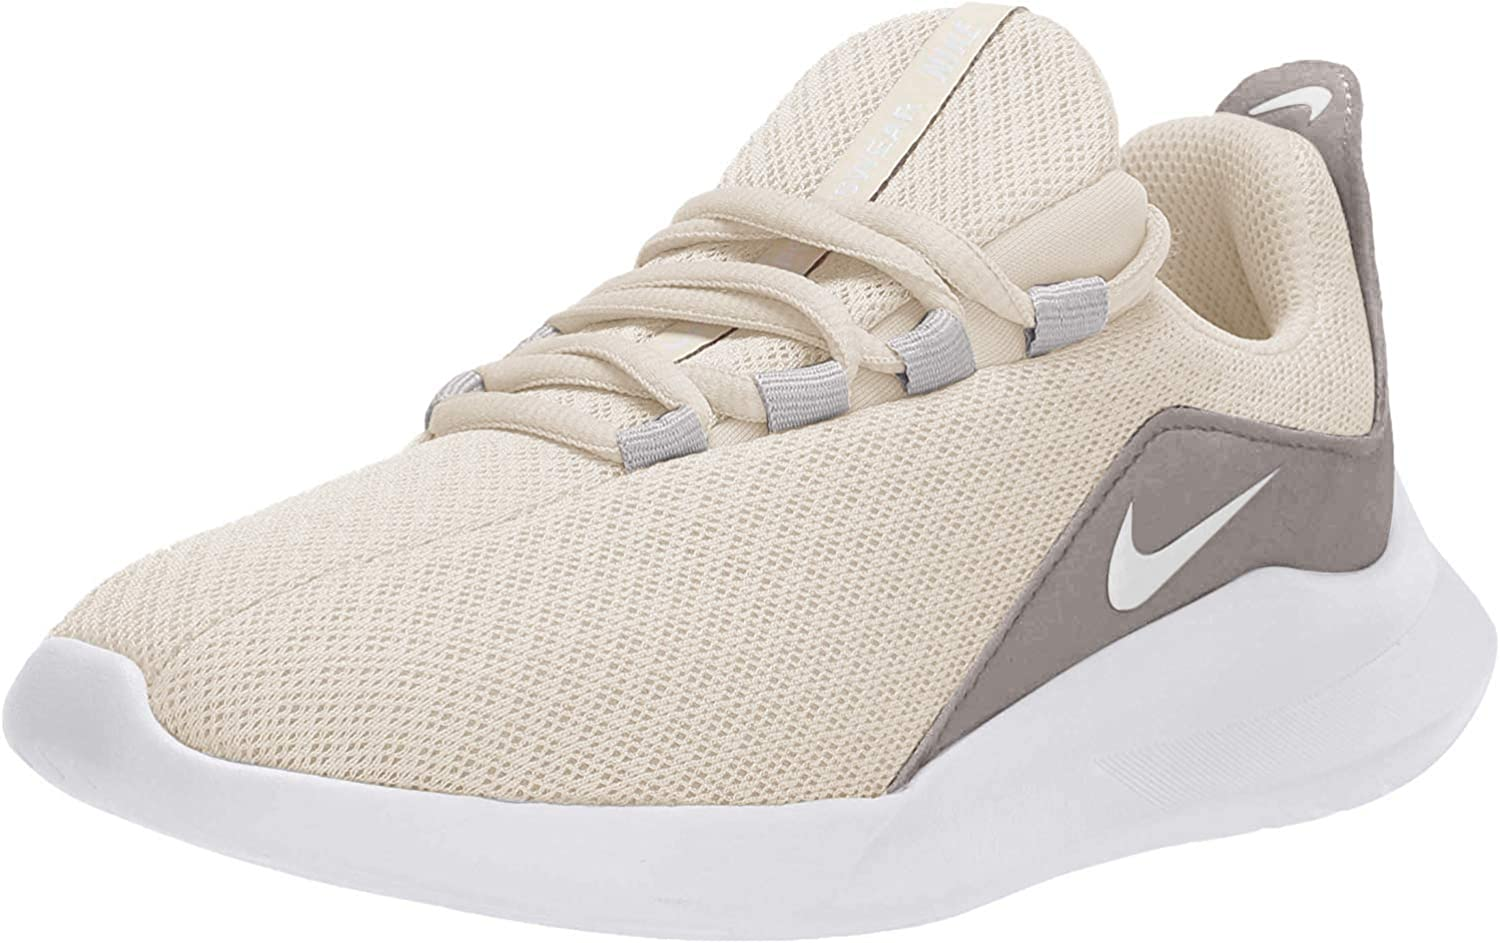 Nike Wmns Viale, Zapatillas de Running para Mujer, Multicolor (Guava Ice/Sail/Atmosphere Grey/Vast Grey 800), 37.5 EU: Amazon.es: Zapatos y complementos